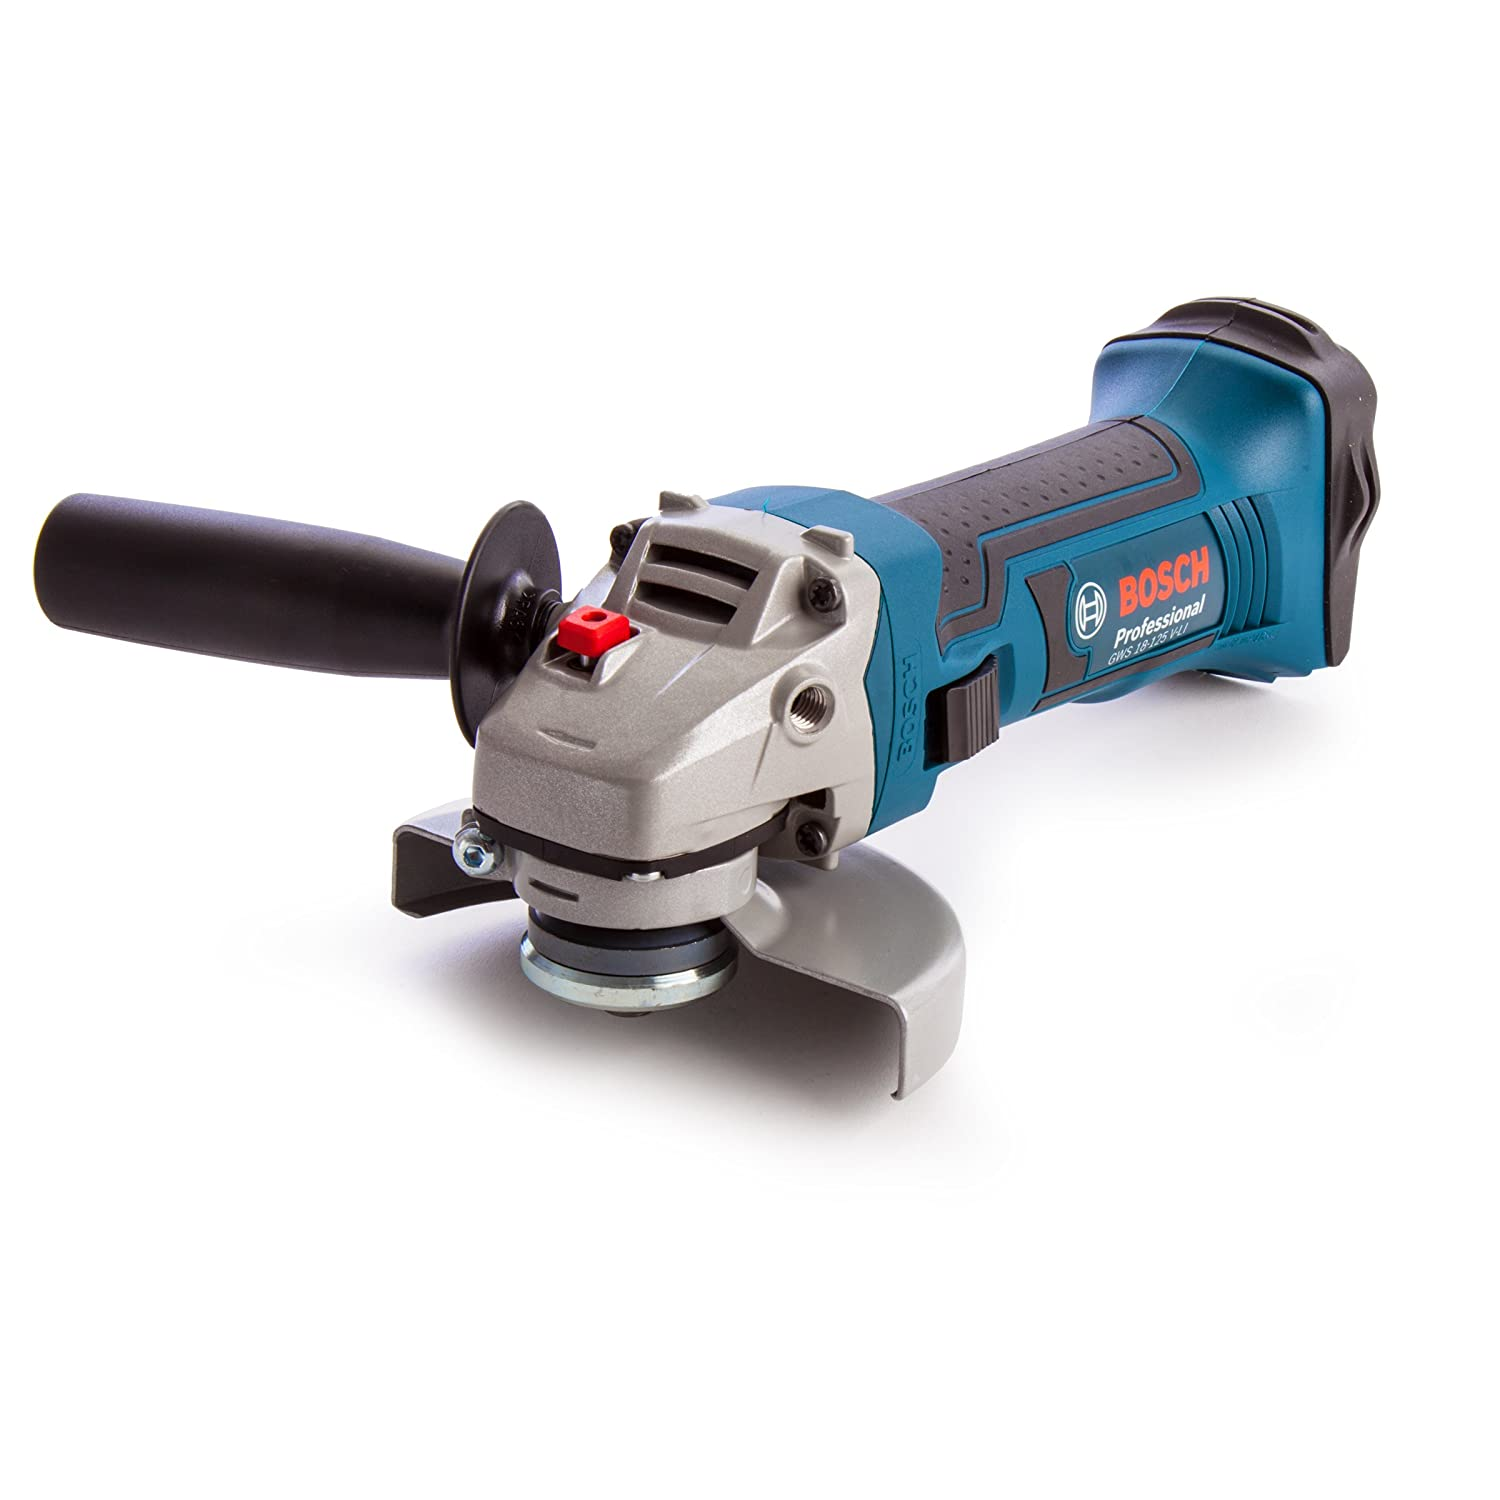 Bosch Professional GWS 18-125 V-LI Cordless Angle Grinder (Without Battery and Charger) - L-Boxx GWS18125VLiN